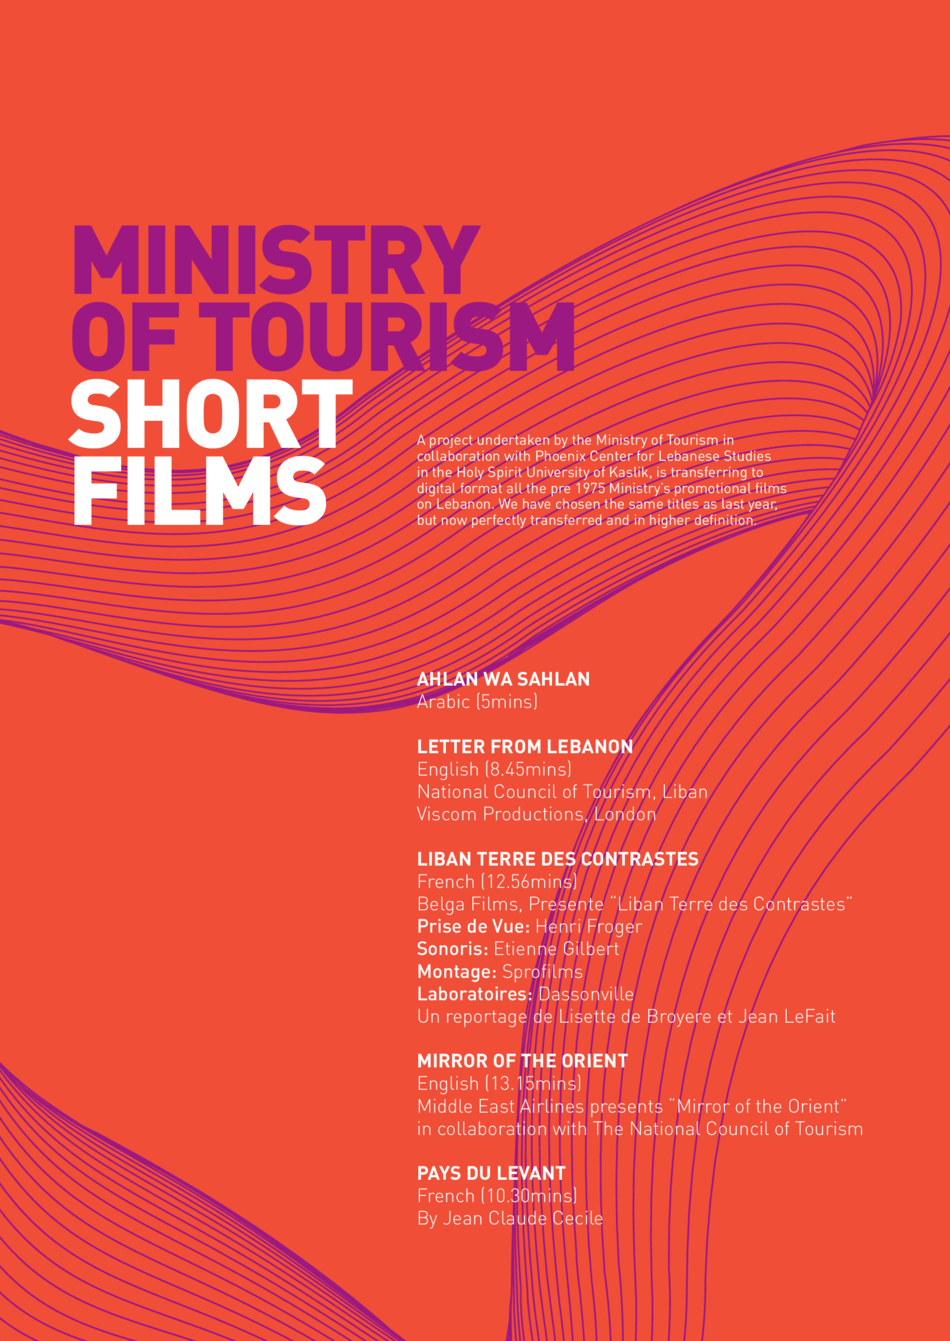 Ministry of Tourism Shorts